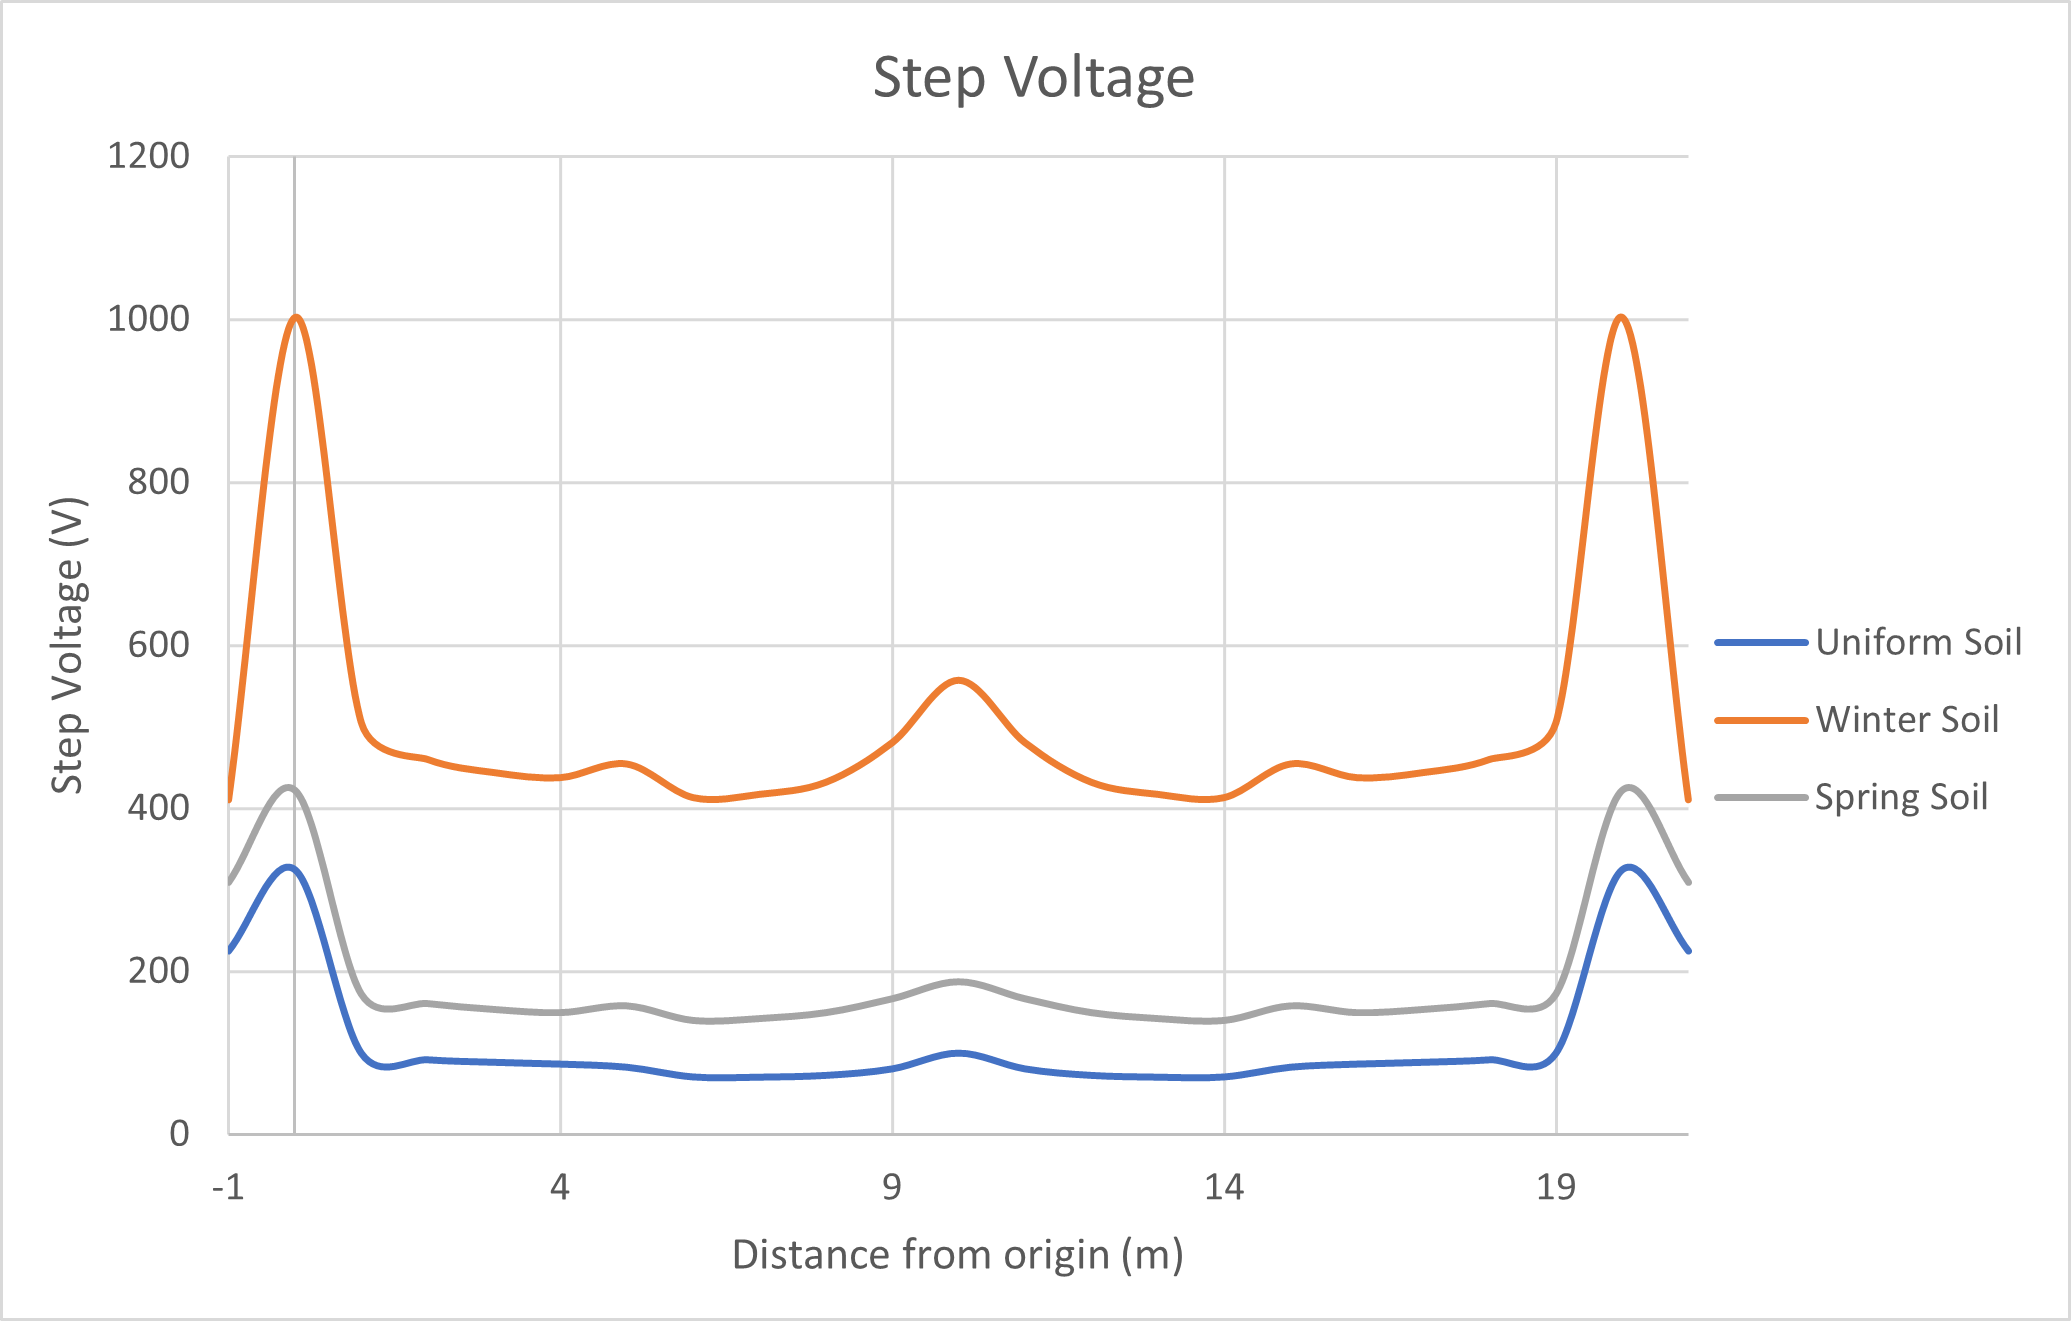 Figure 11 Step voltages of the grid with rods - Earth Grid Design for Frozen Soils